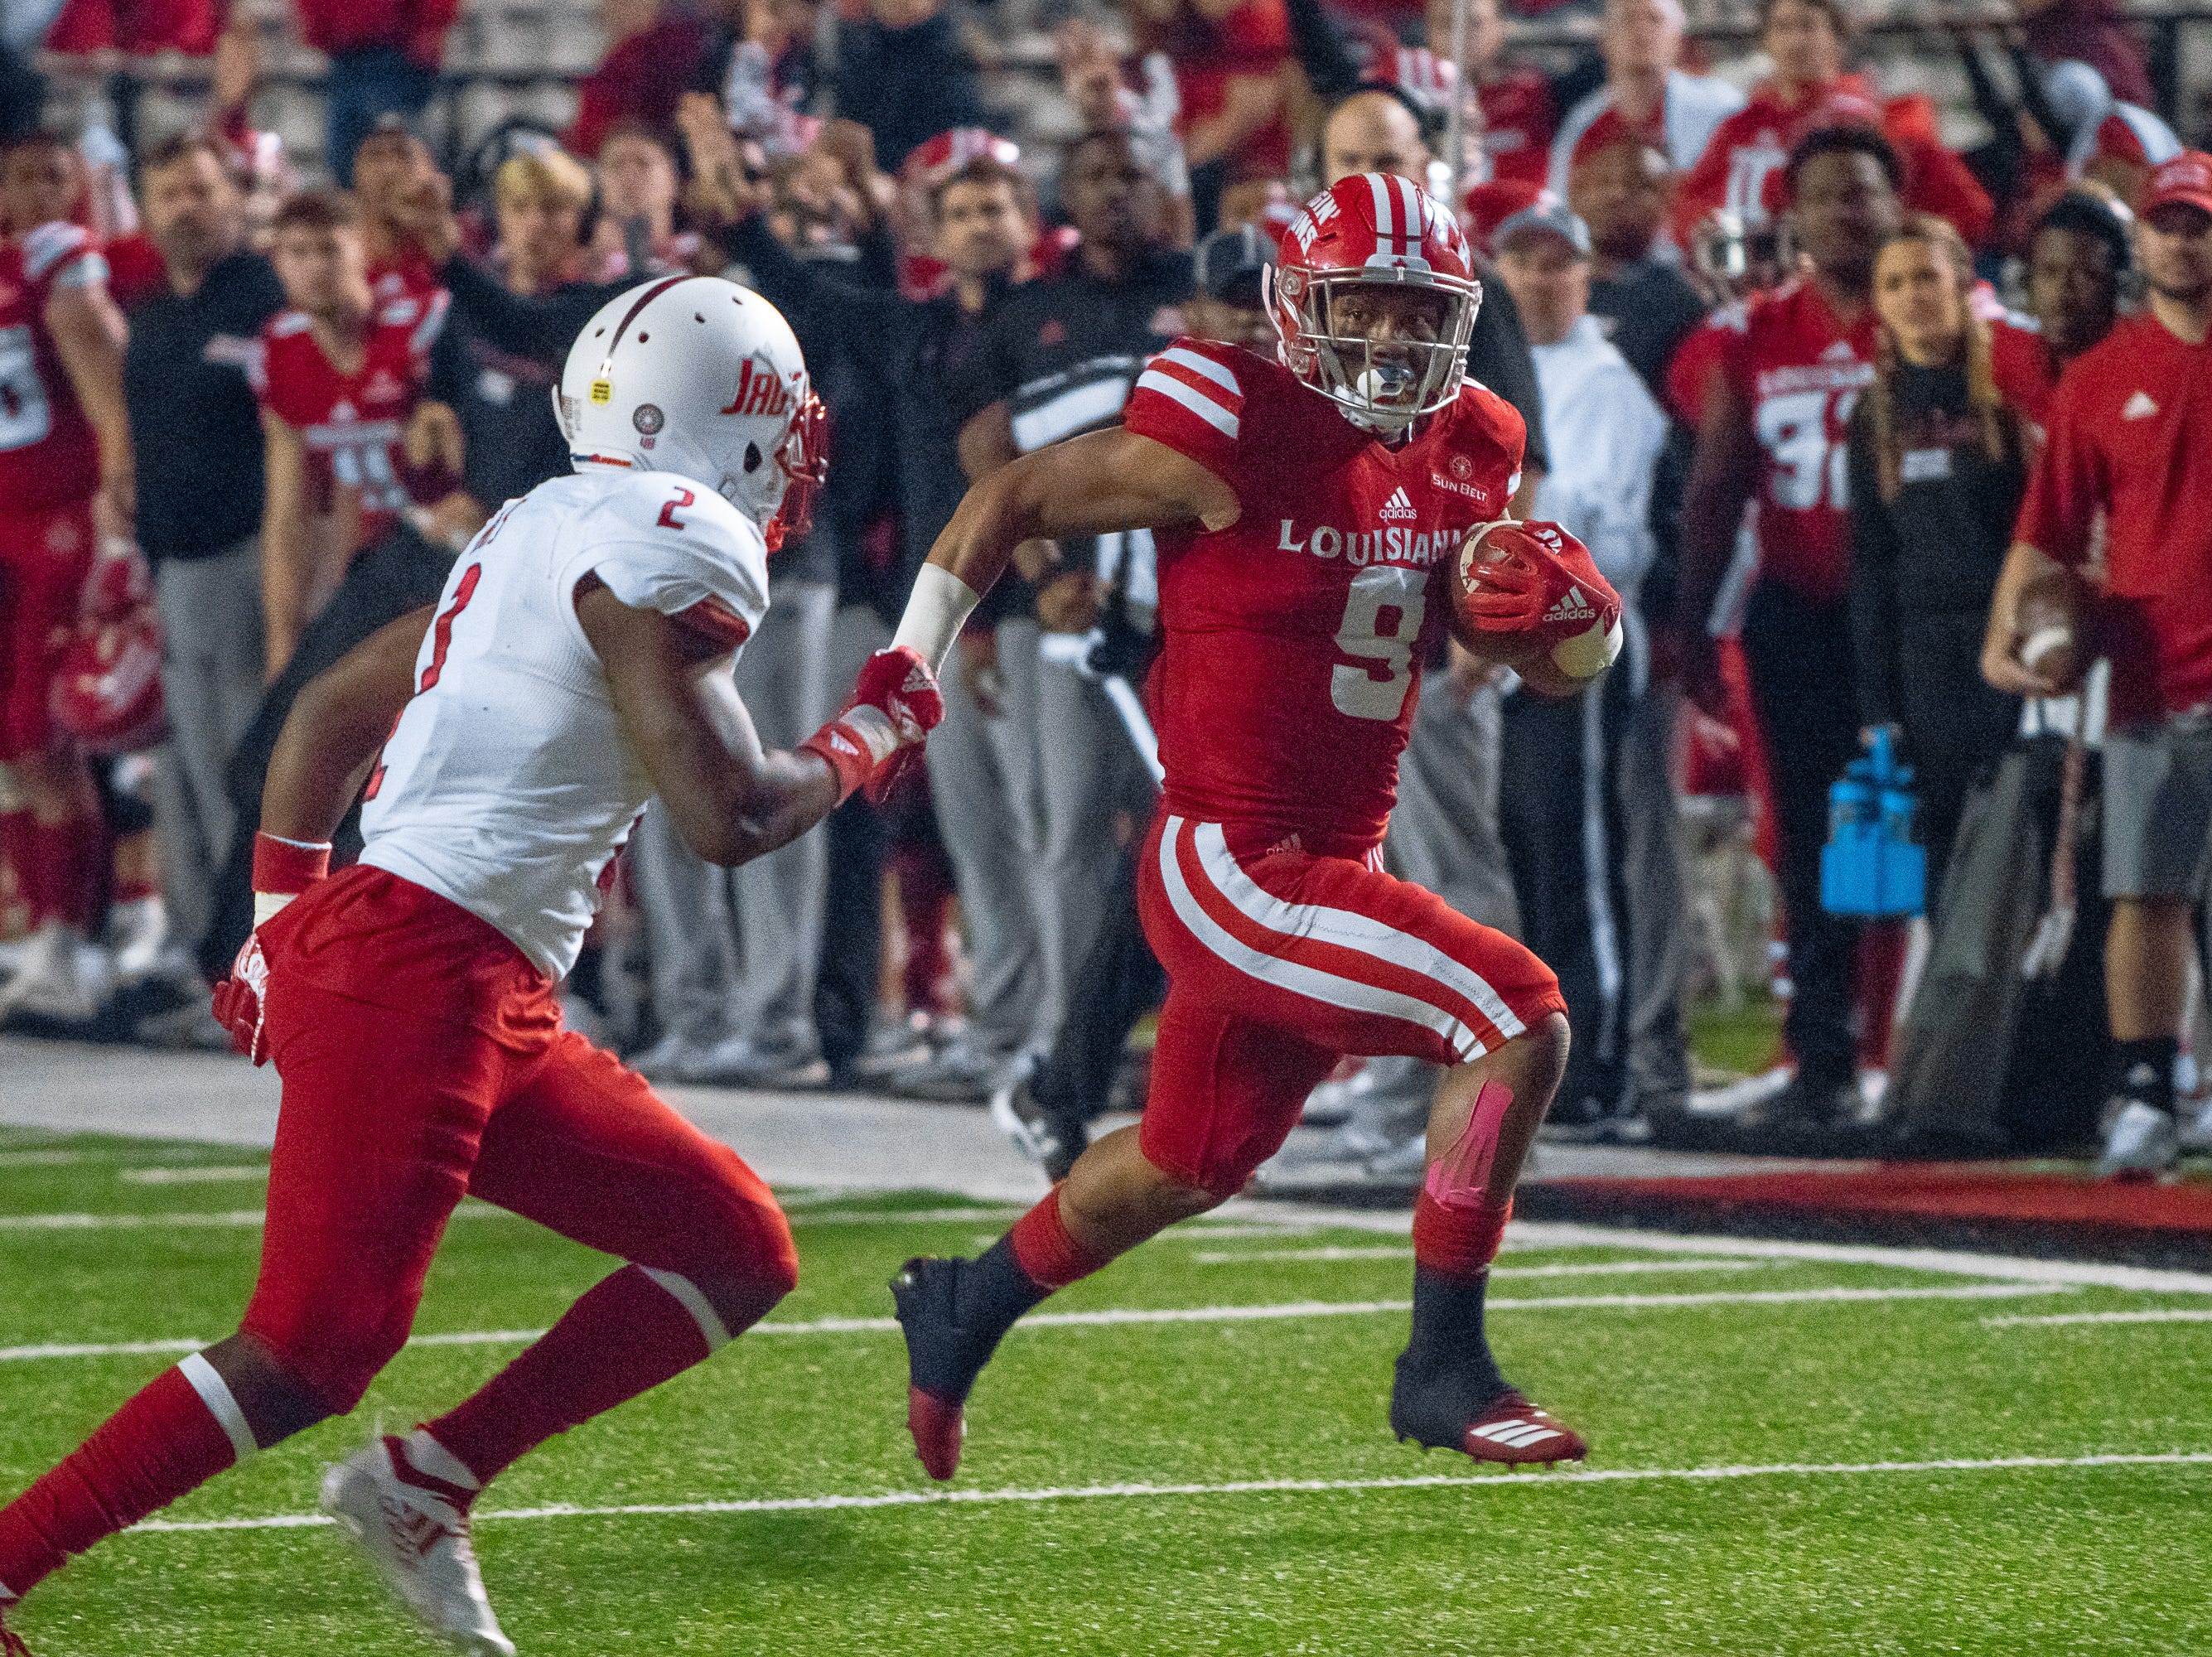 Ragin' Cajuns arrive in Orlando ready to 'finish the right way'